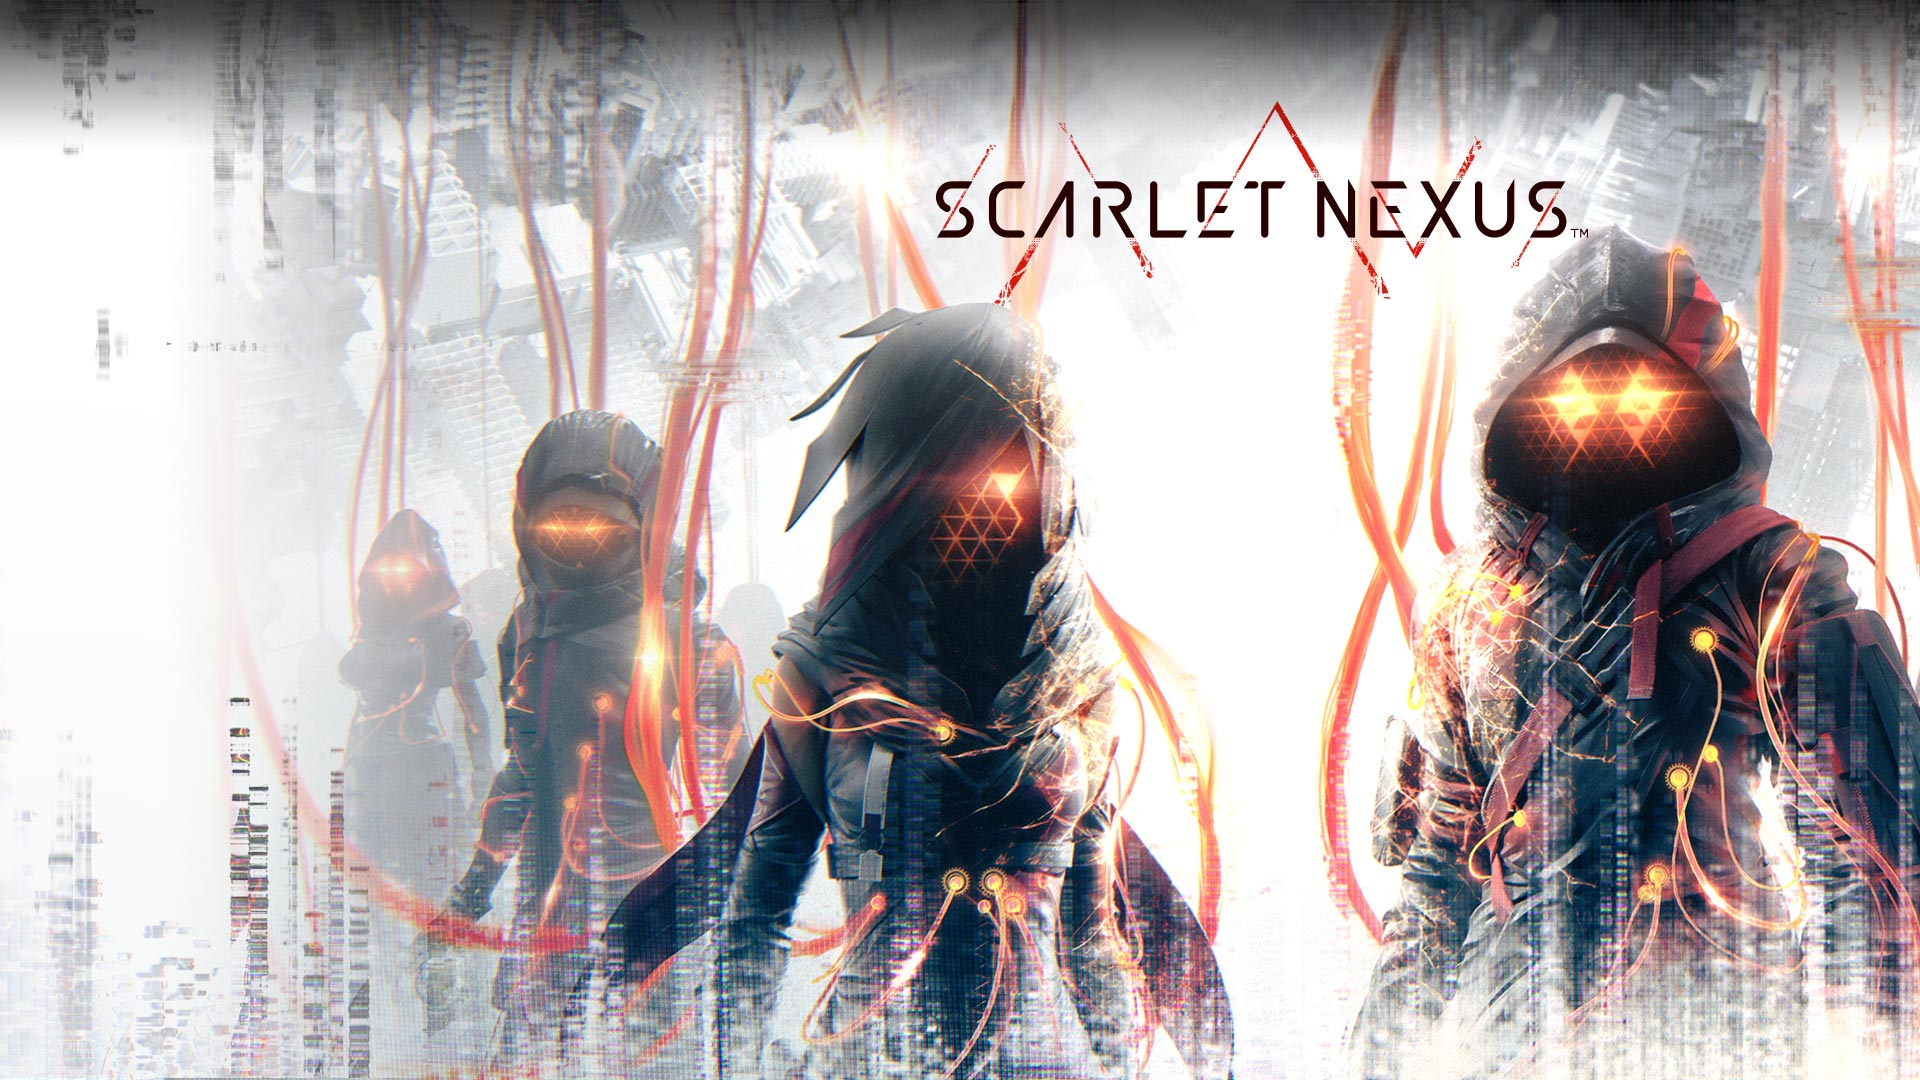 Scarlet Nexus, Dark characters with glowing eyes attached to tubes and wires